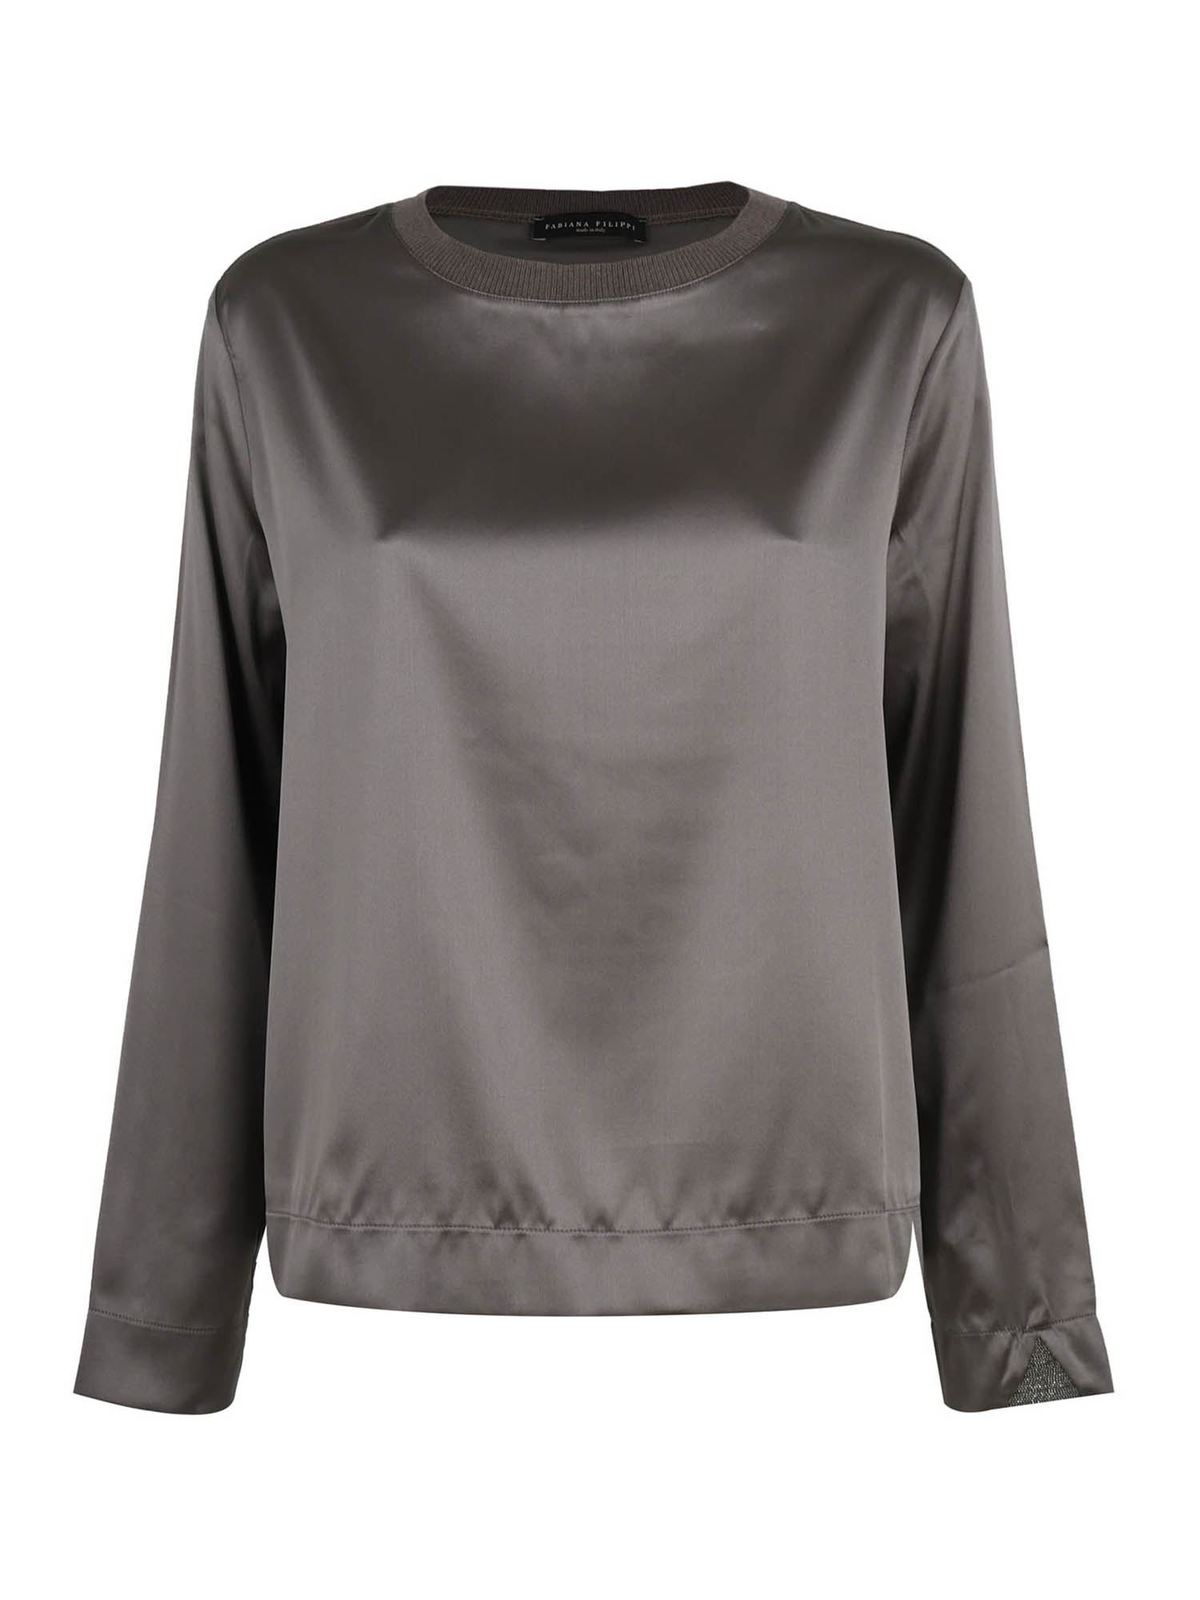 Fabiana Filippi JEWEL DETAIL SILK T-SHIRT IN BROWN